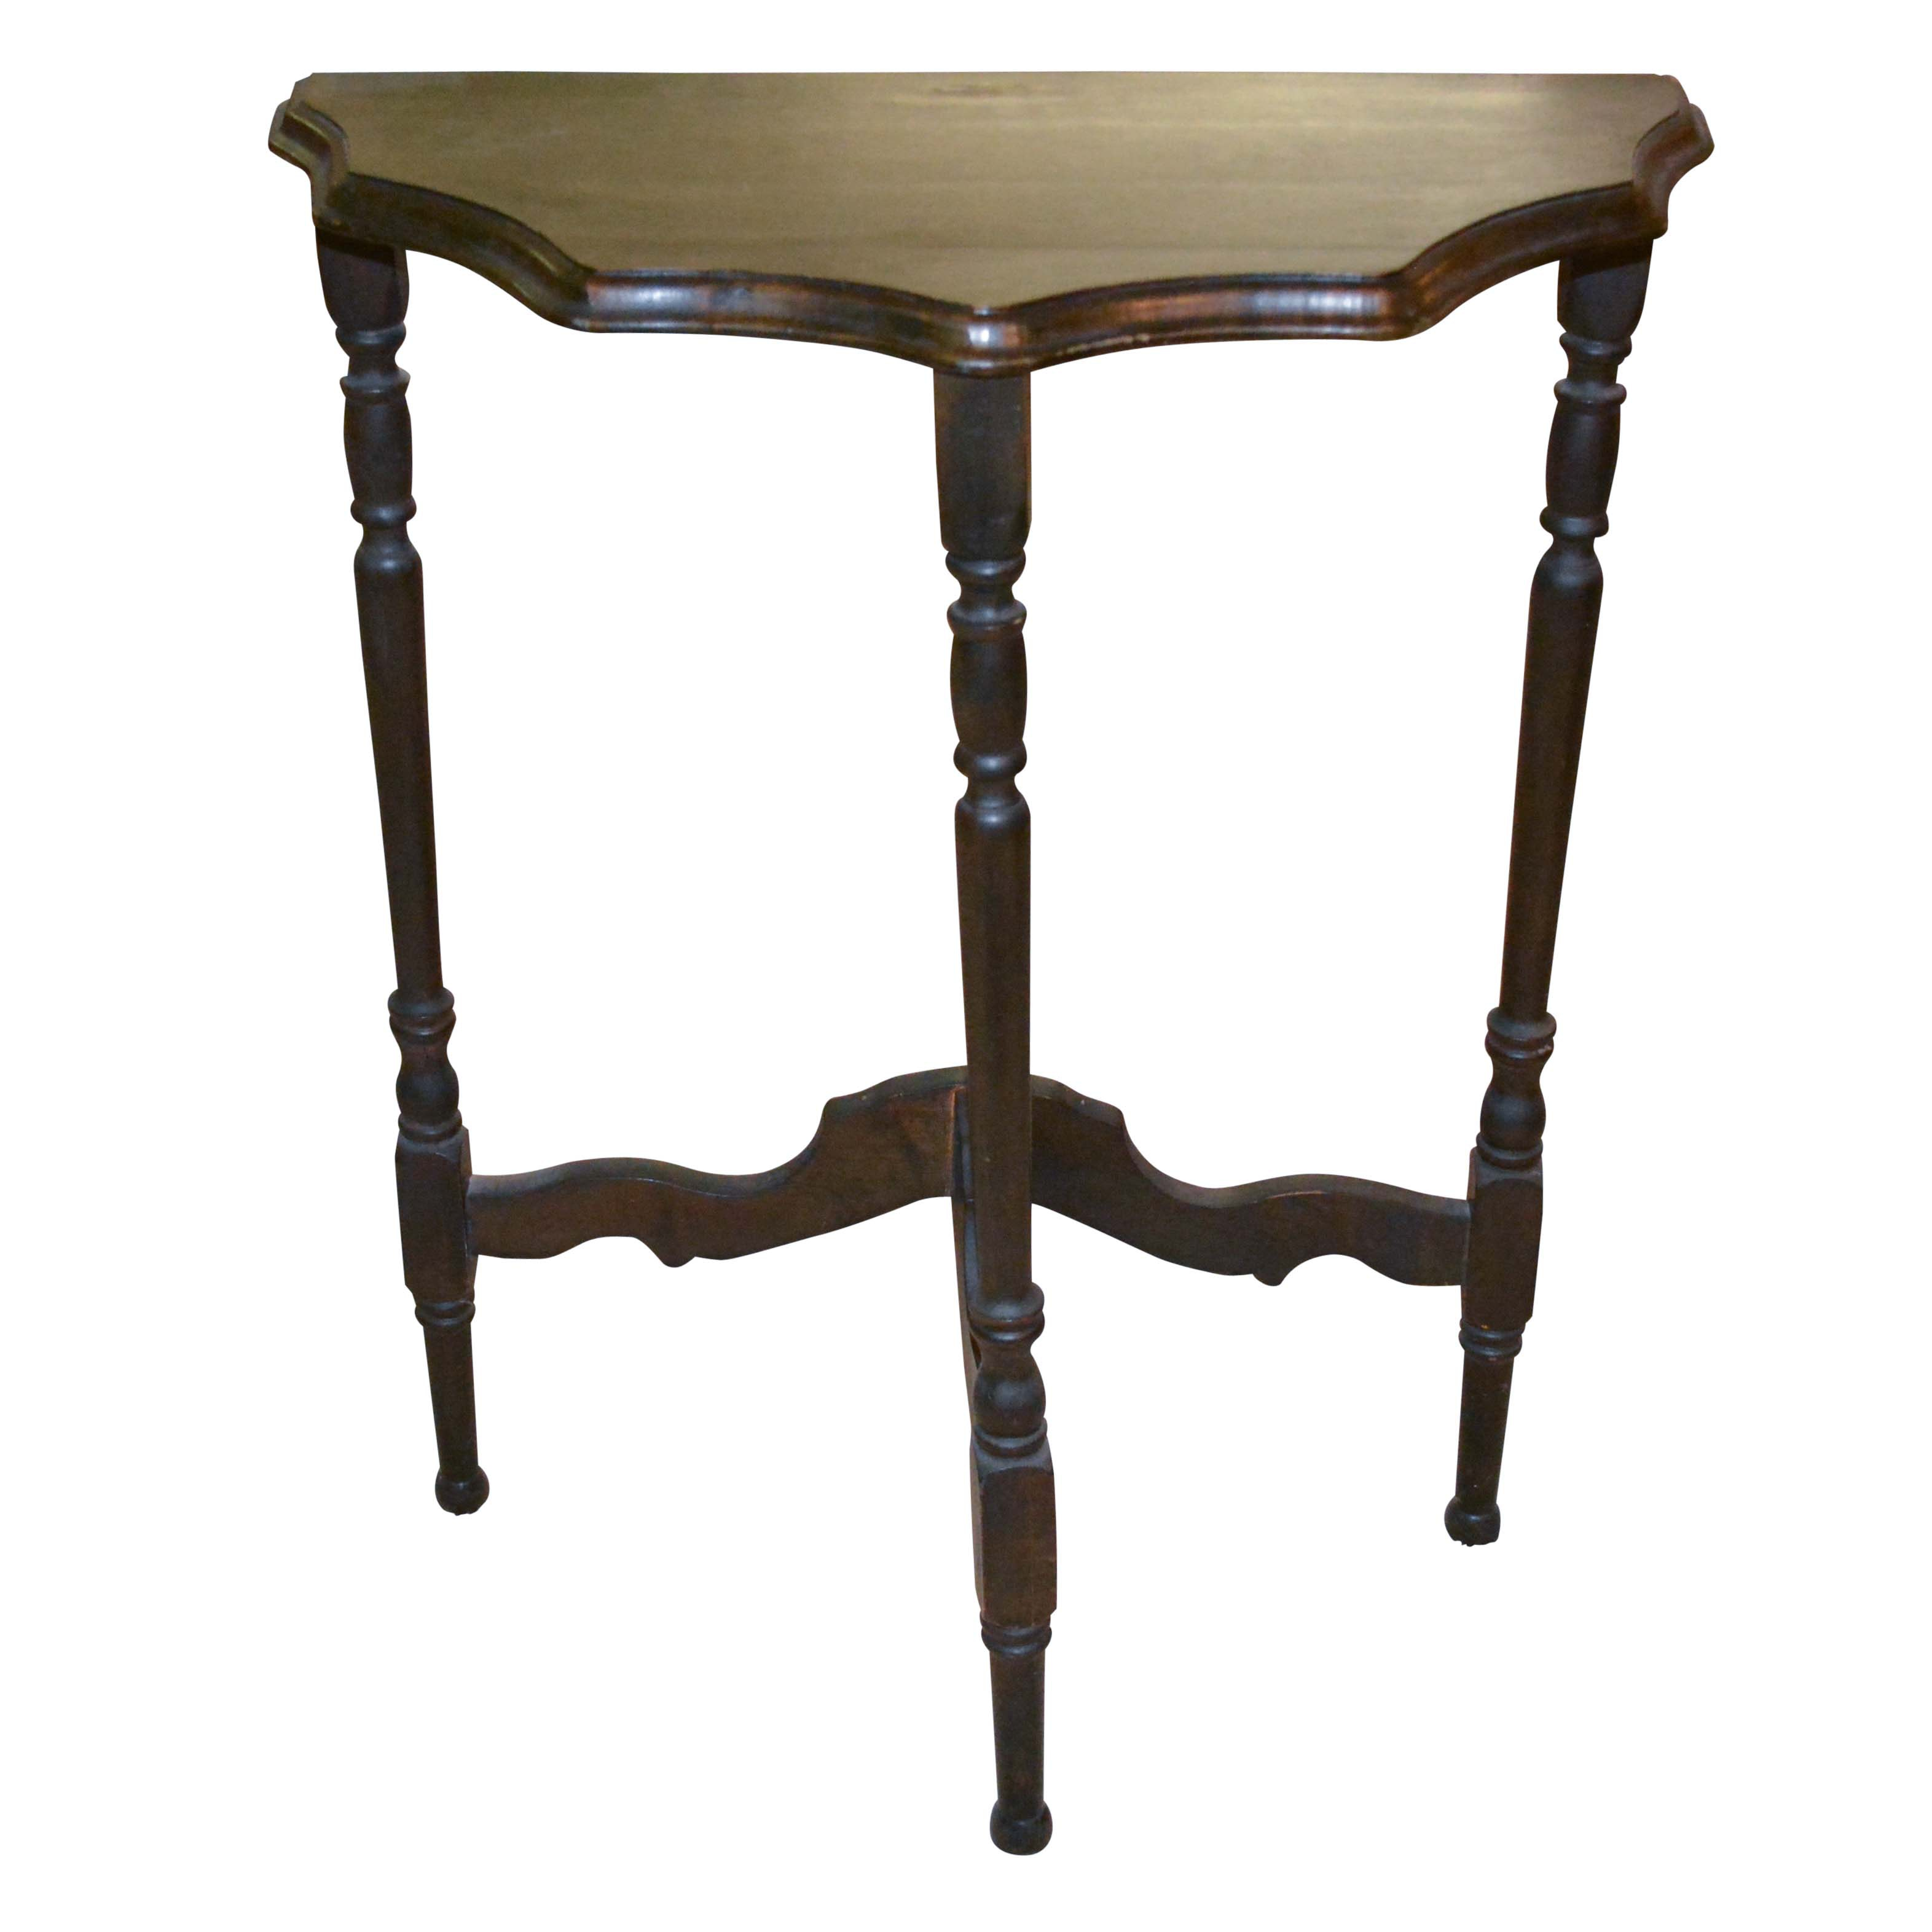 Vintage Demilune Entry Table